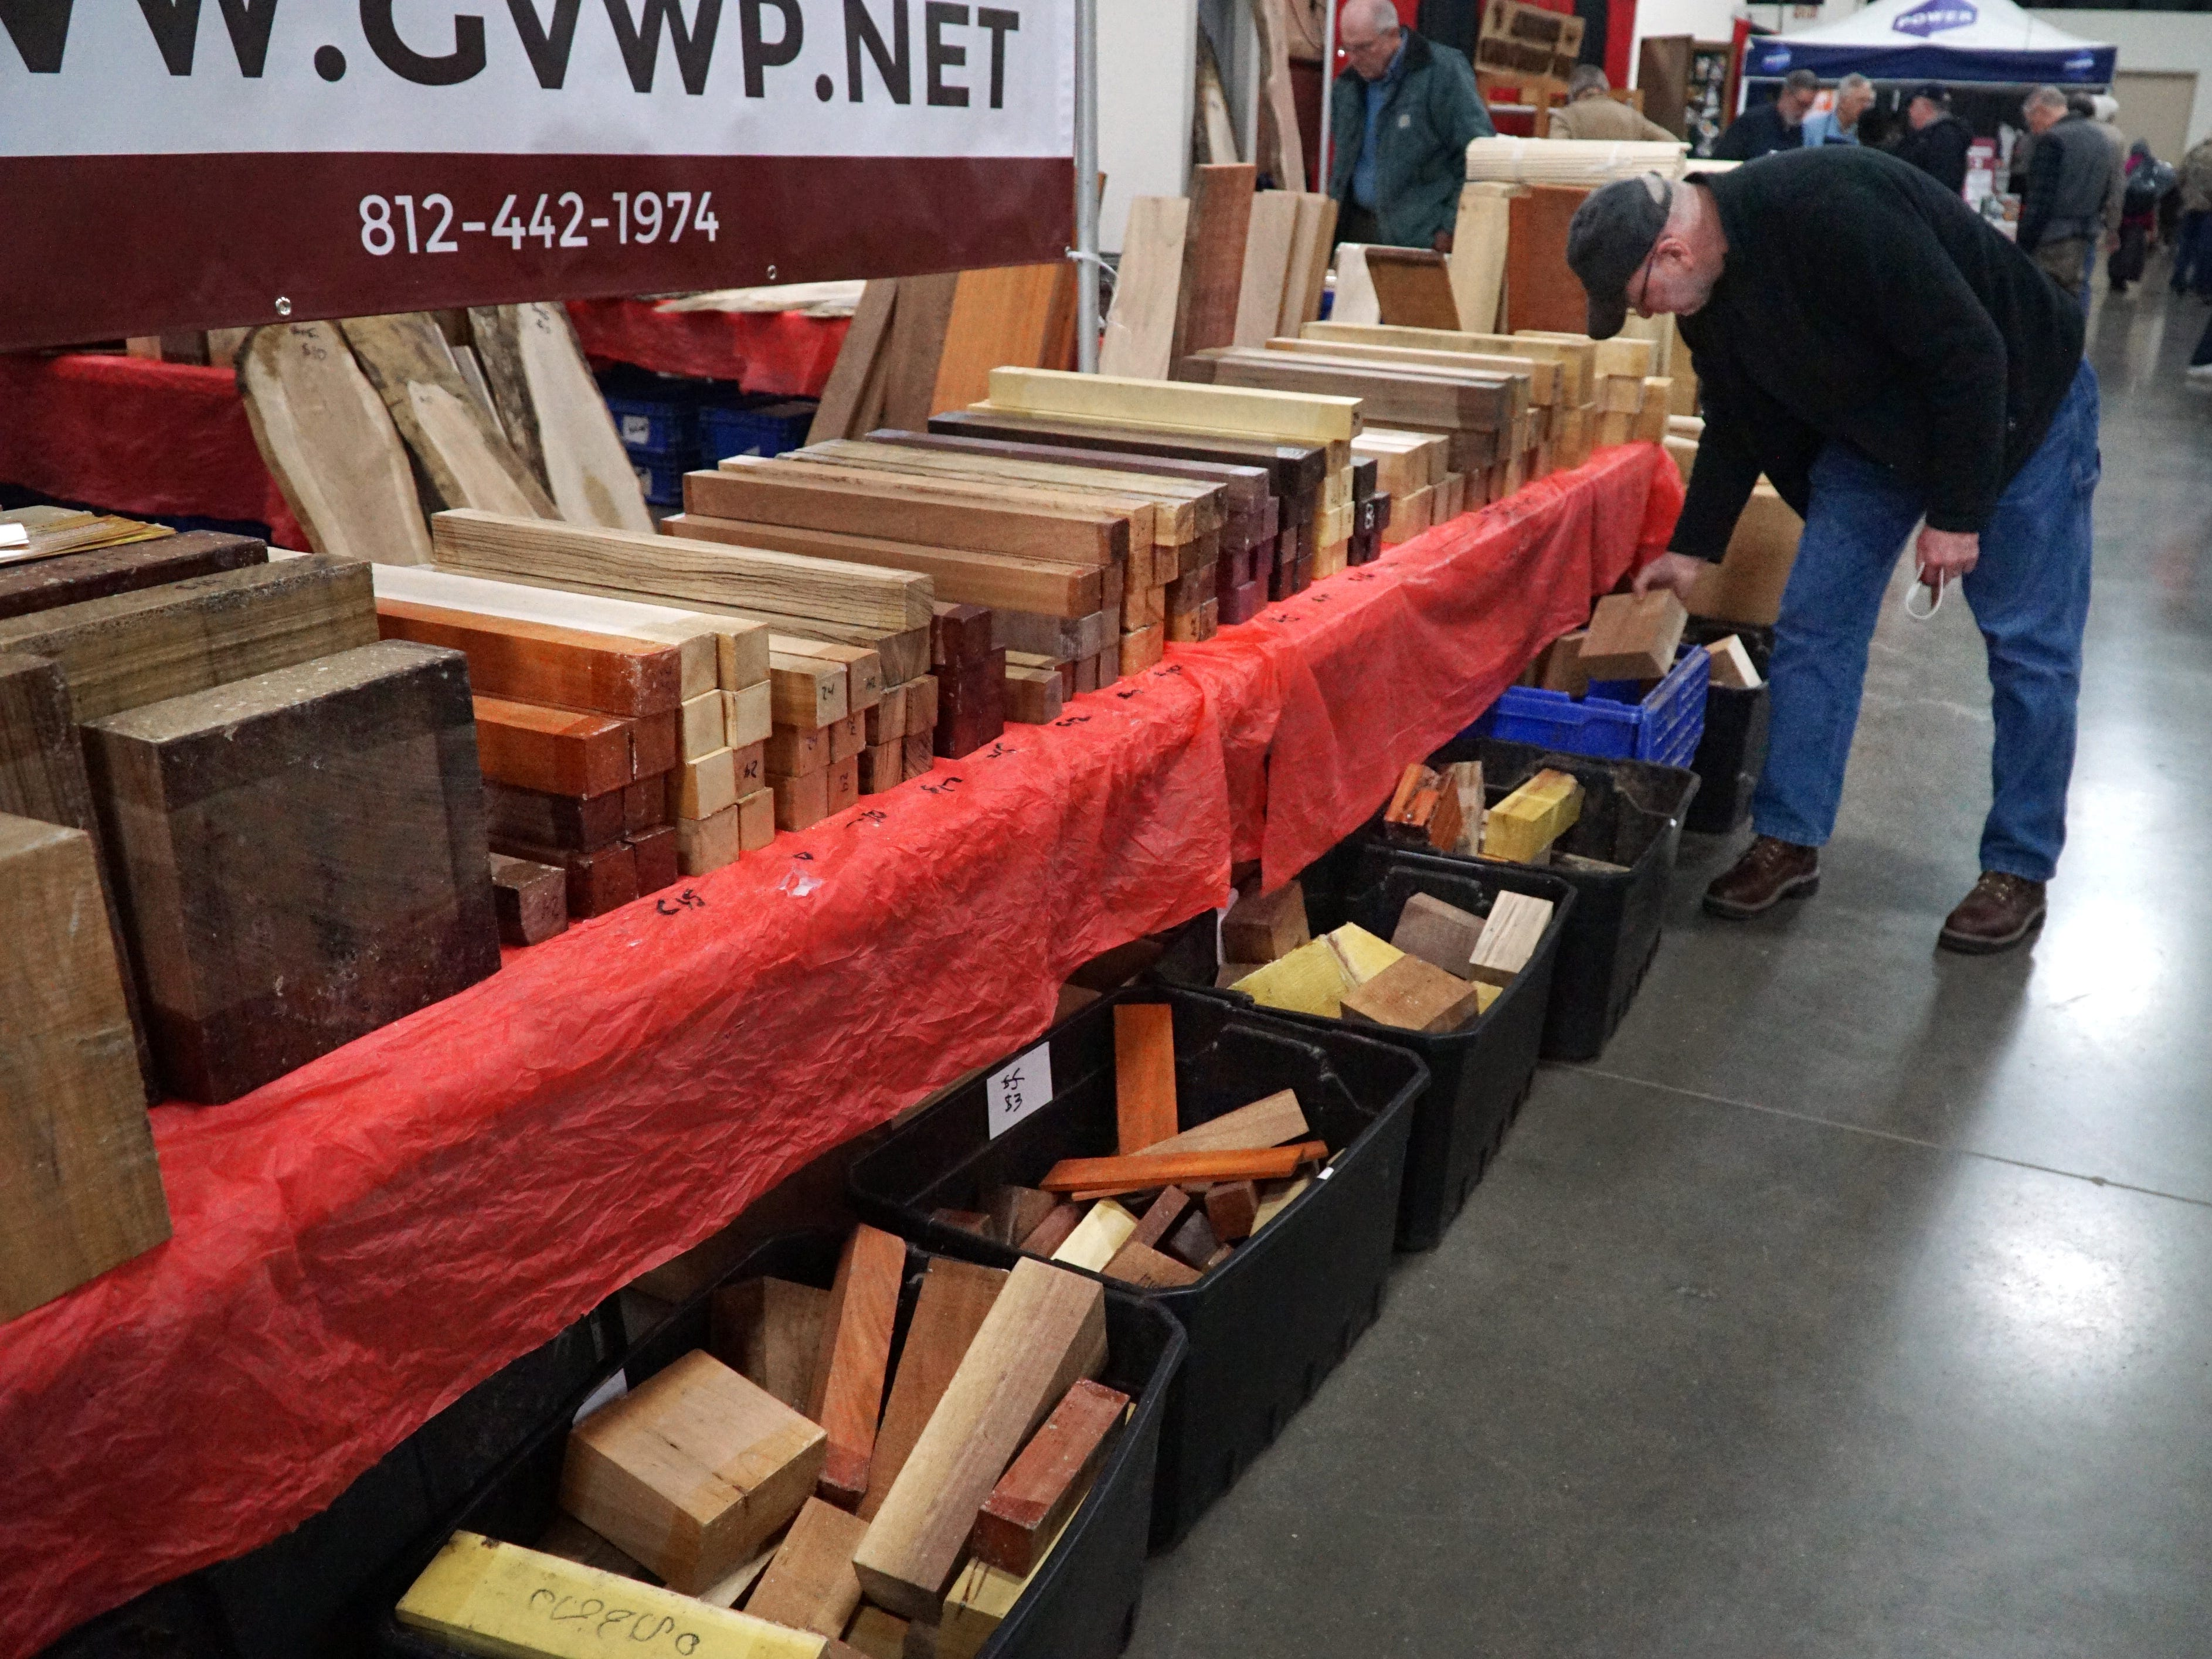 The woodworking show featured vendors selling everything from power tools, to hardware and finishing products to wood blanks for the wood workers in attendance.